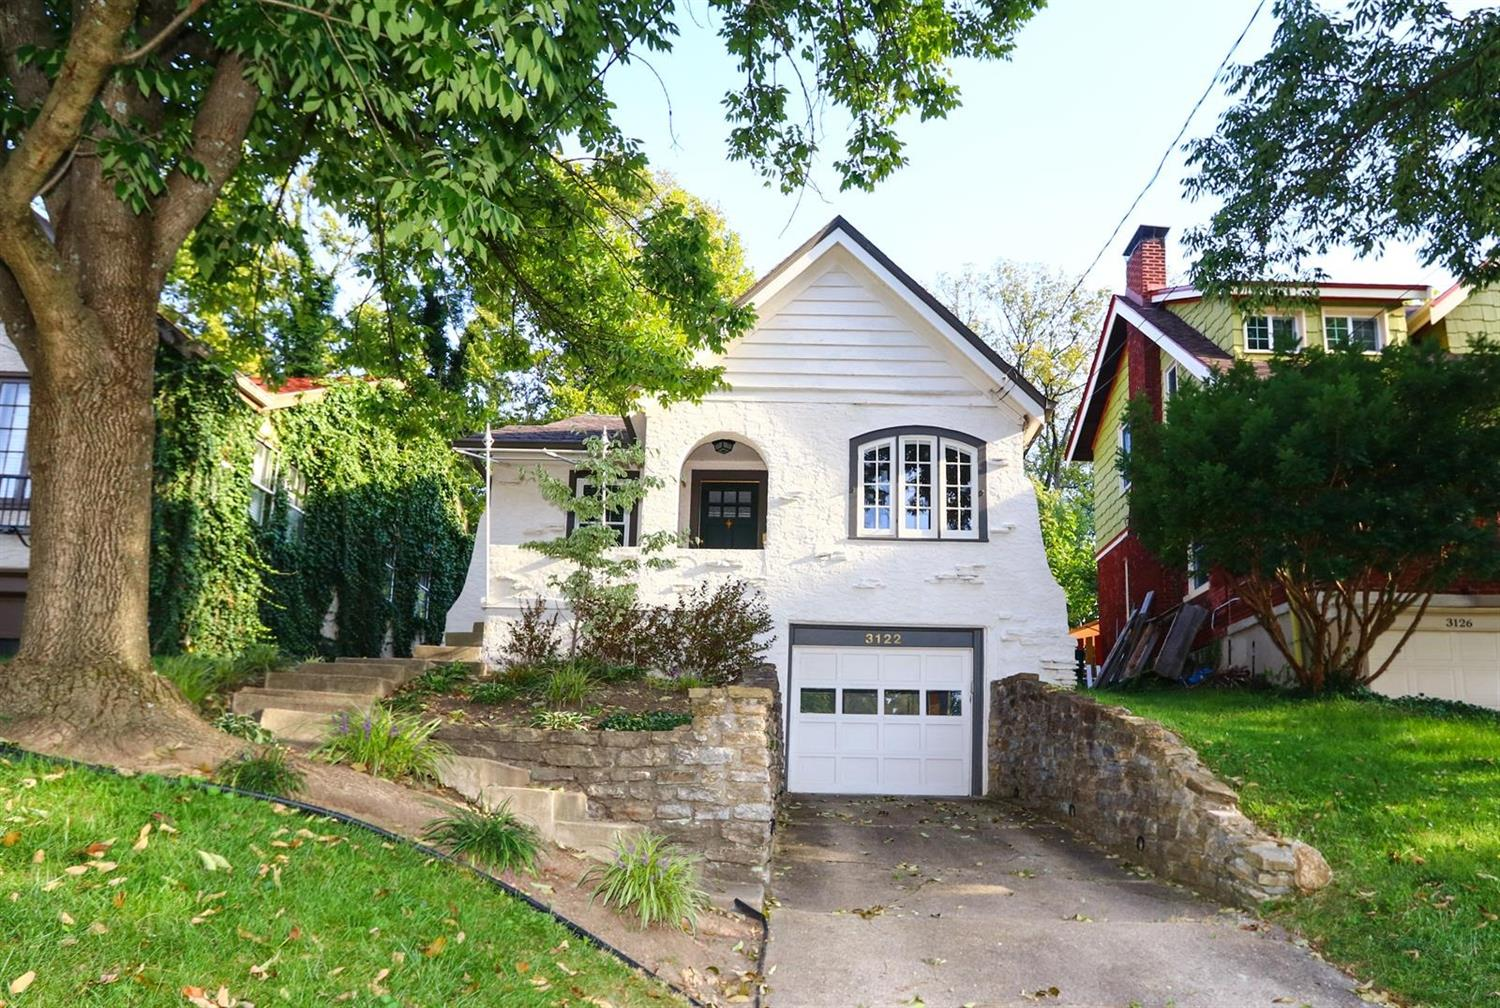 3122 Kinmont St, Mt  Lookout, OH 45208 Listing Details: MLS